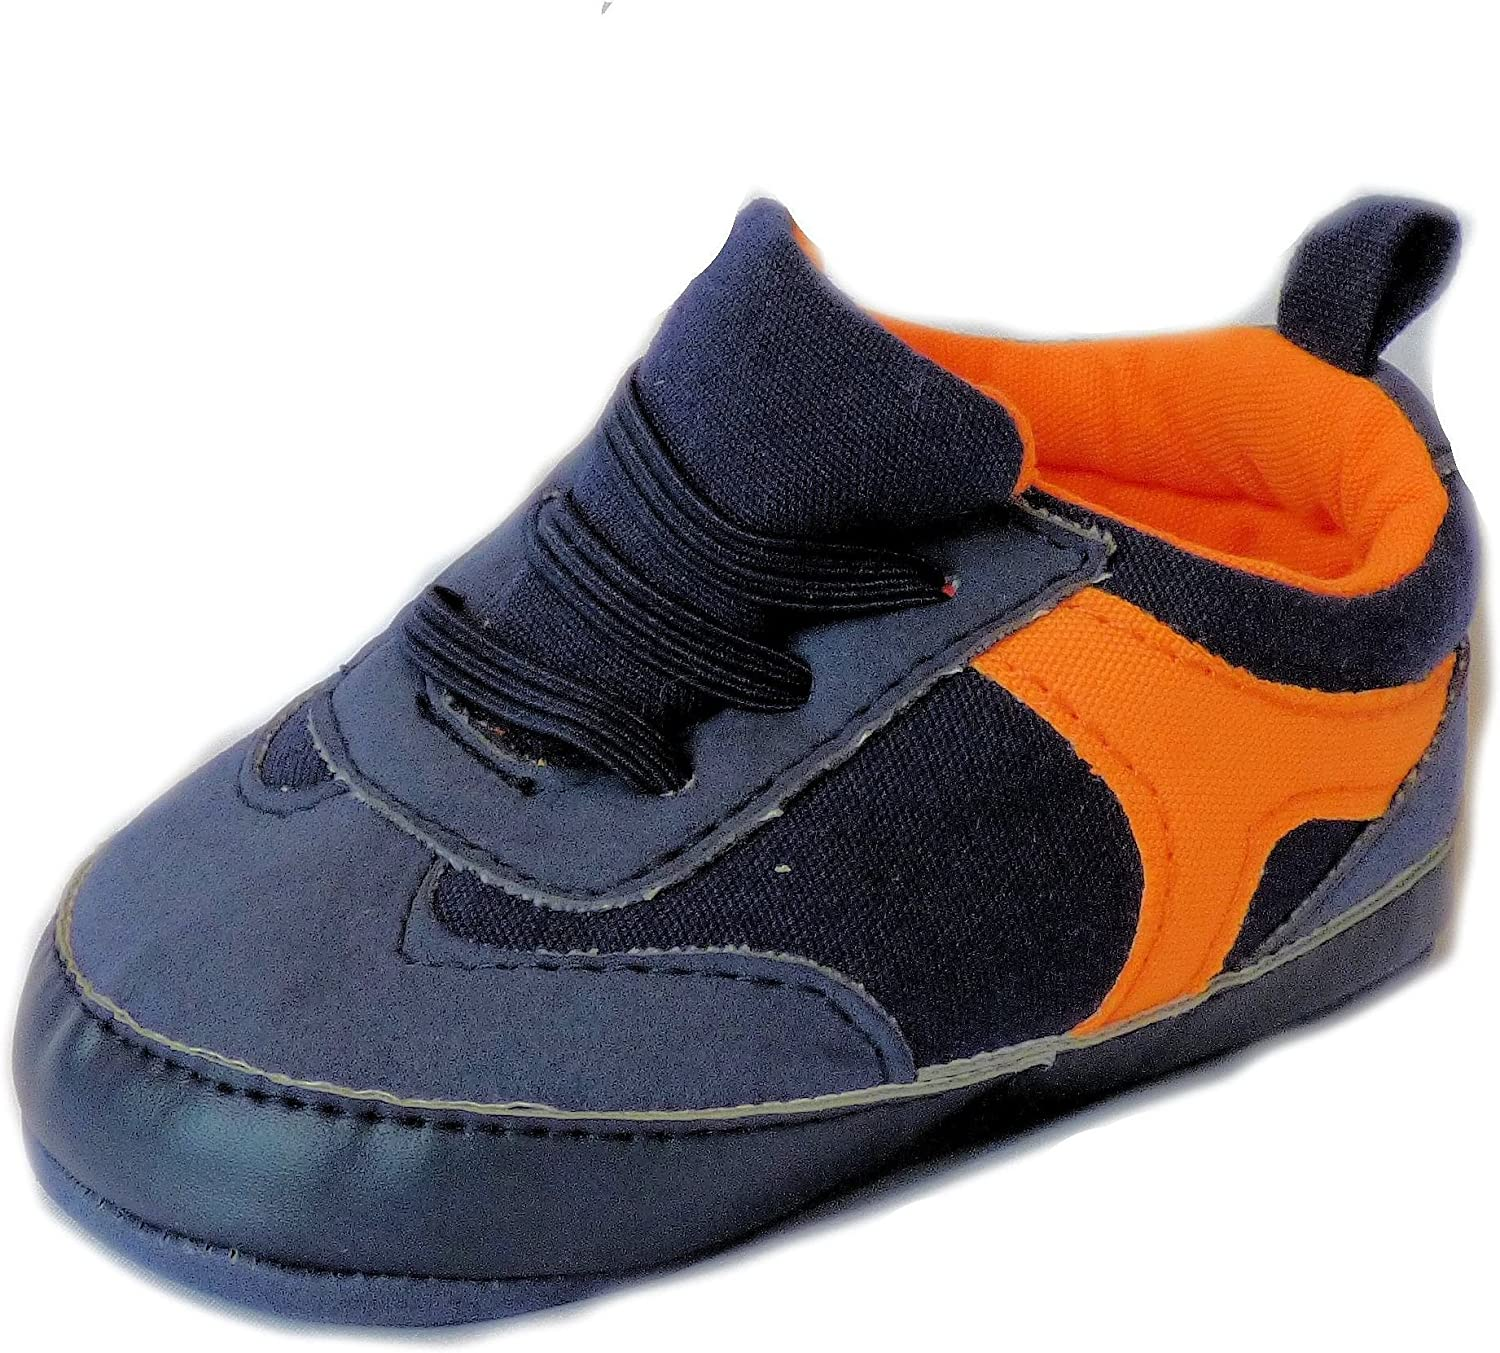 Carter's Baby Ranking Max 57% OFF TOP20 Boys Navy Orange Sneakers Months Crib 3-6